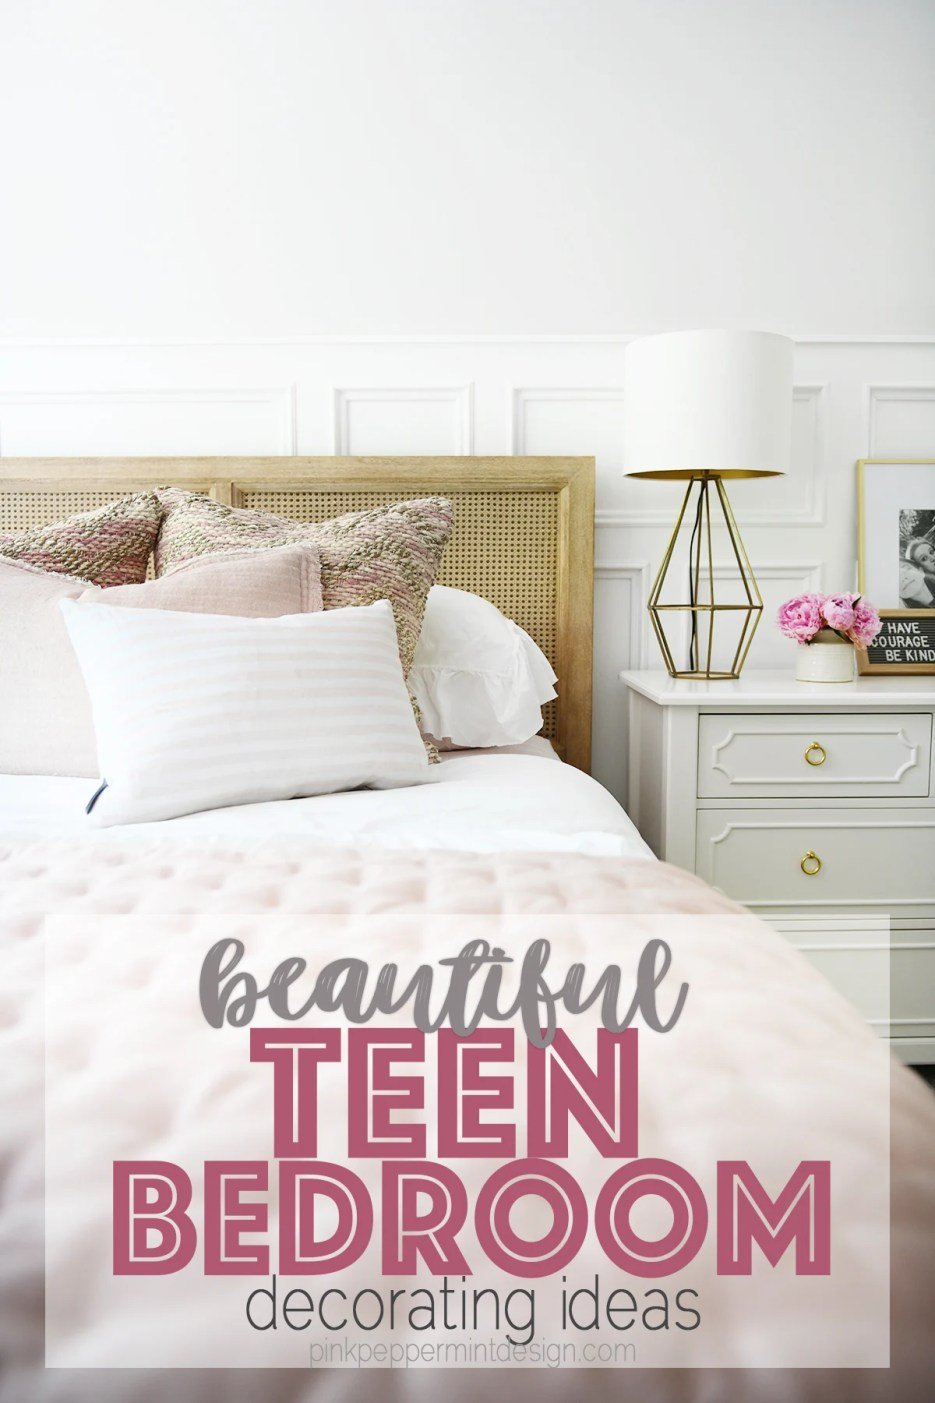 Cute Room Ideas for a Teenage Girl: Teen Bedroom Before ... on Room Decor For Teens  id=67924